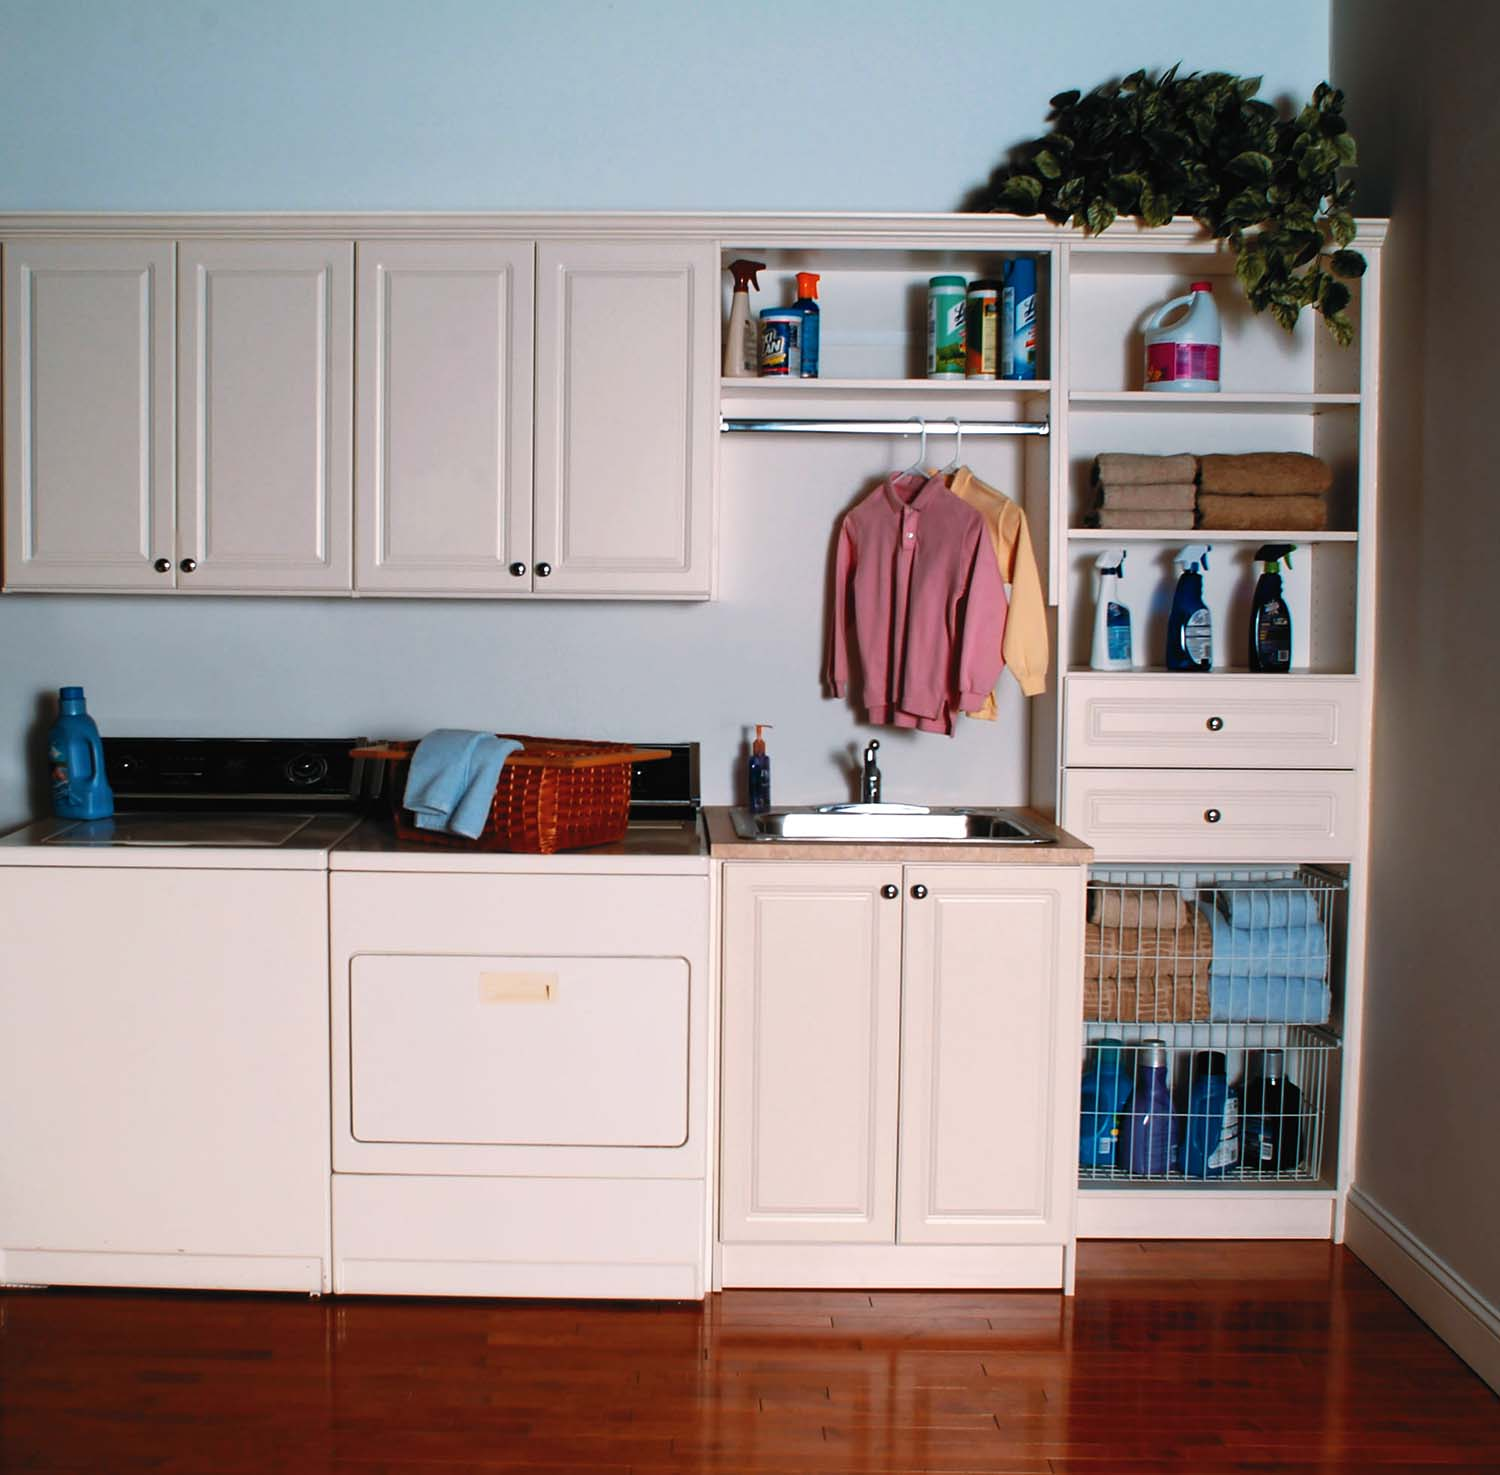 3 Functional & Aesthetically Pleasing Laundry Room Ideas